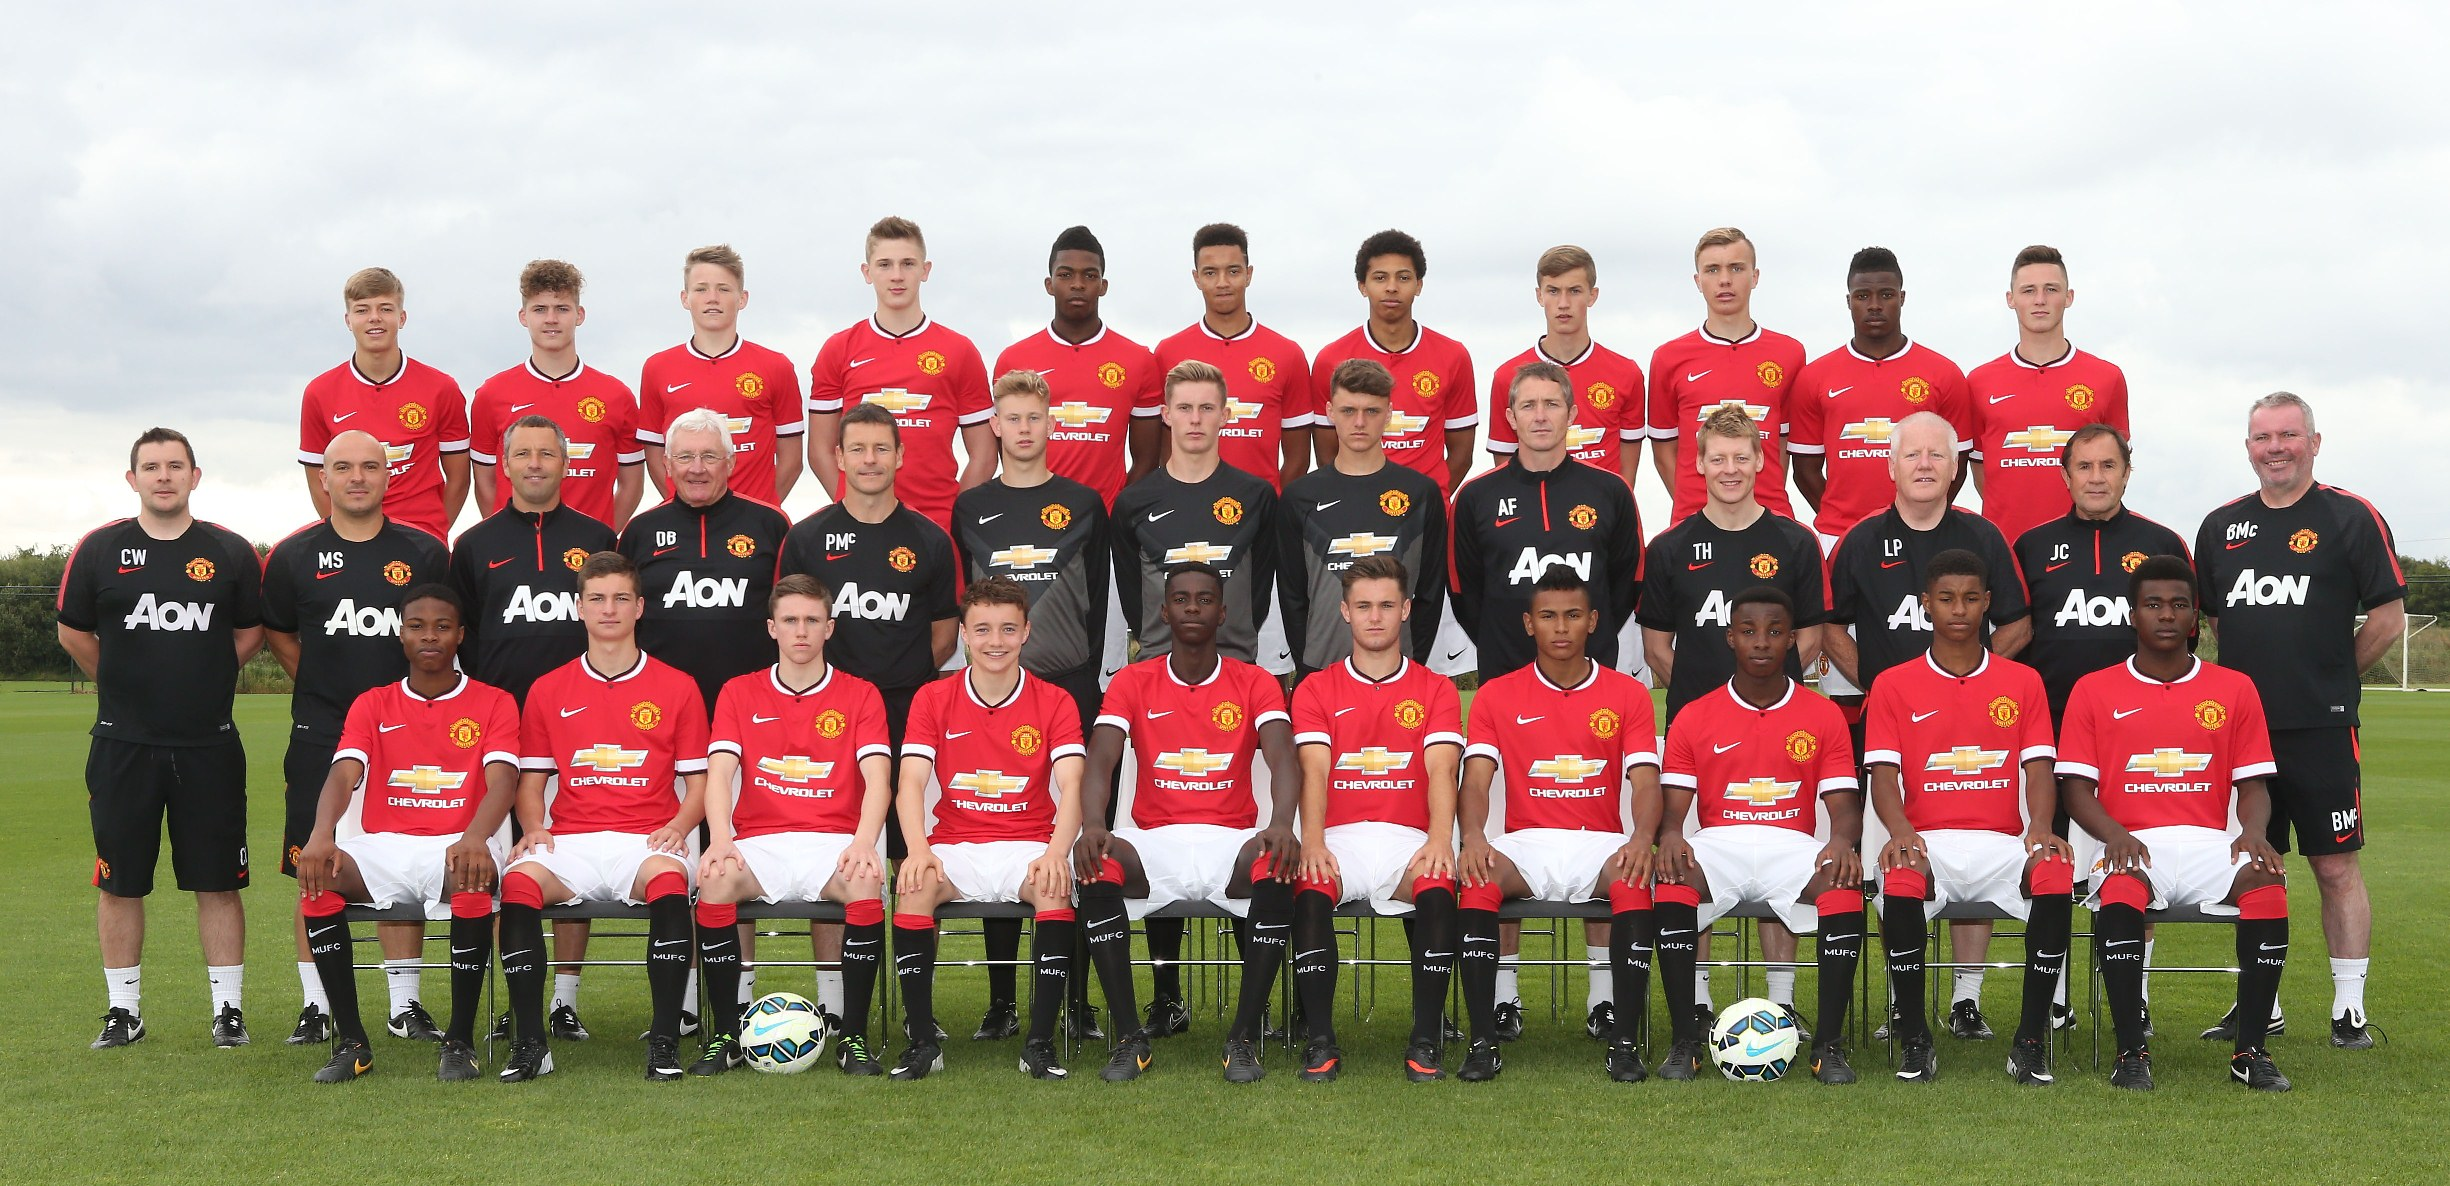 Man United's young English talent does exist!